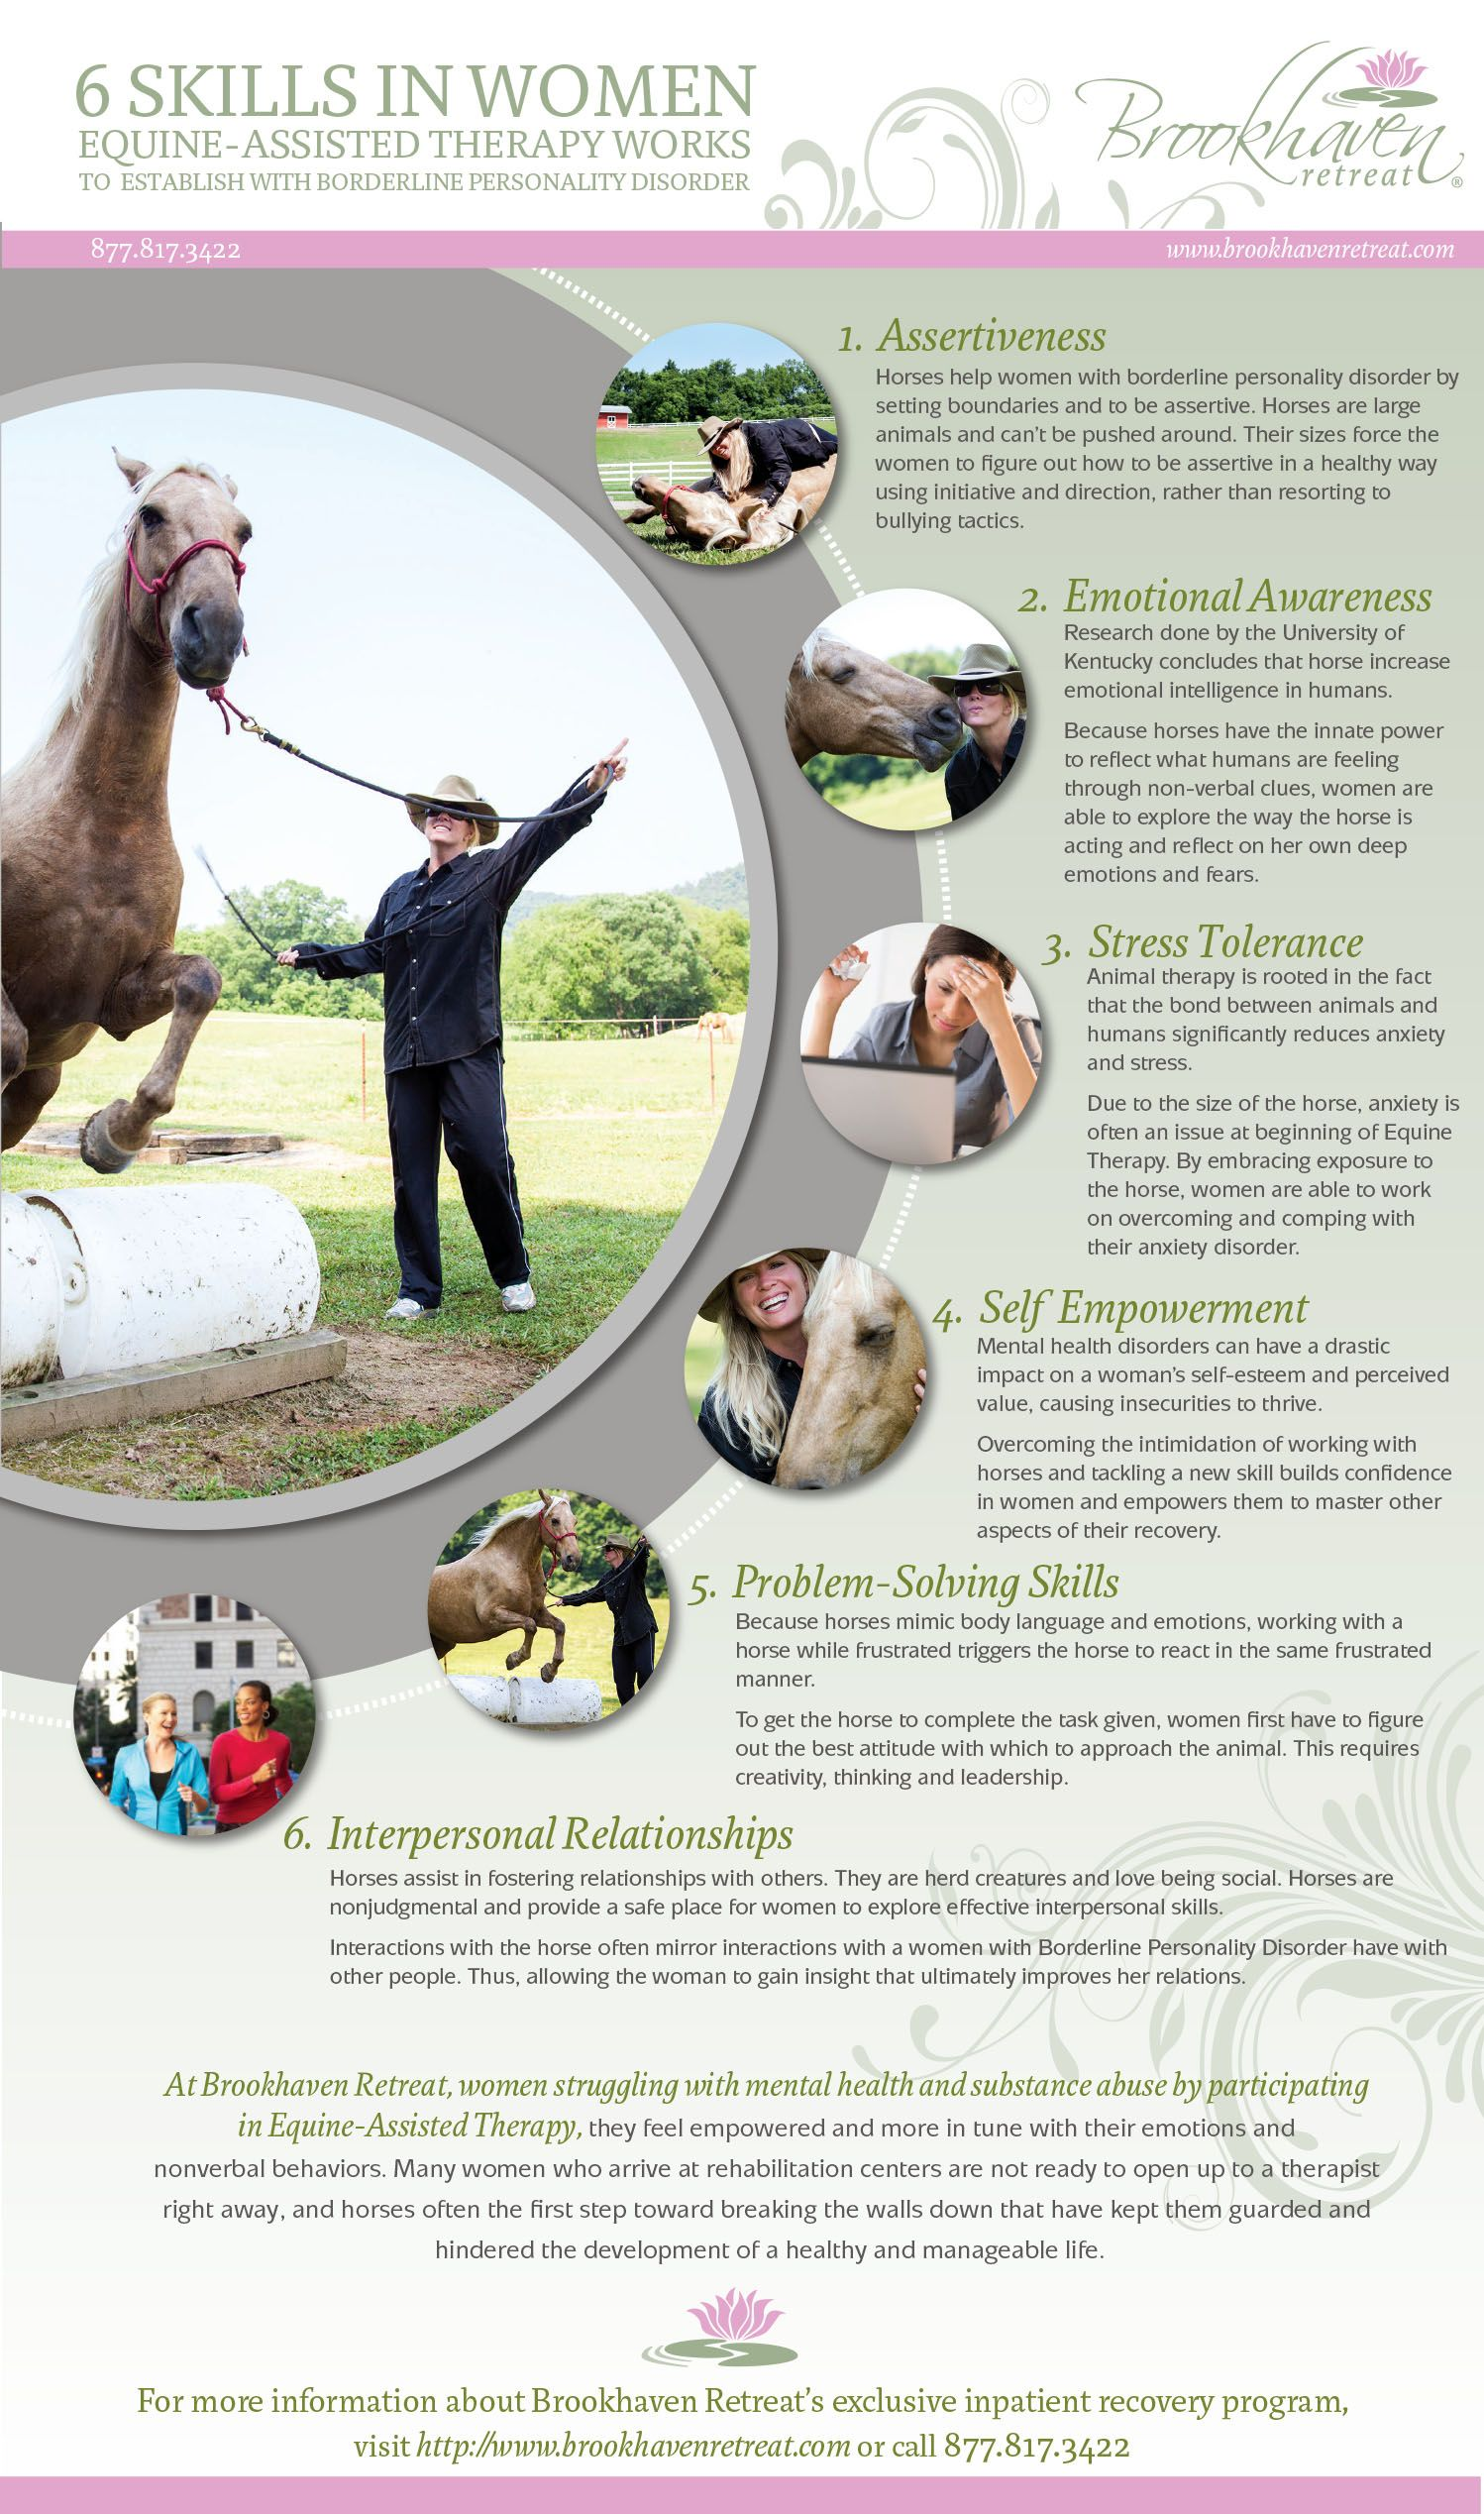 6 Skills Equine Assisted Therapy Works To Establish In Women With Borderline Personality Disorder Http Www Womensinpa Therapy Animals Horse Therapy Equines